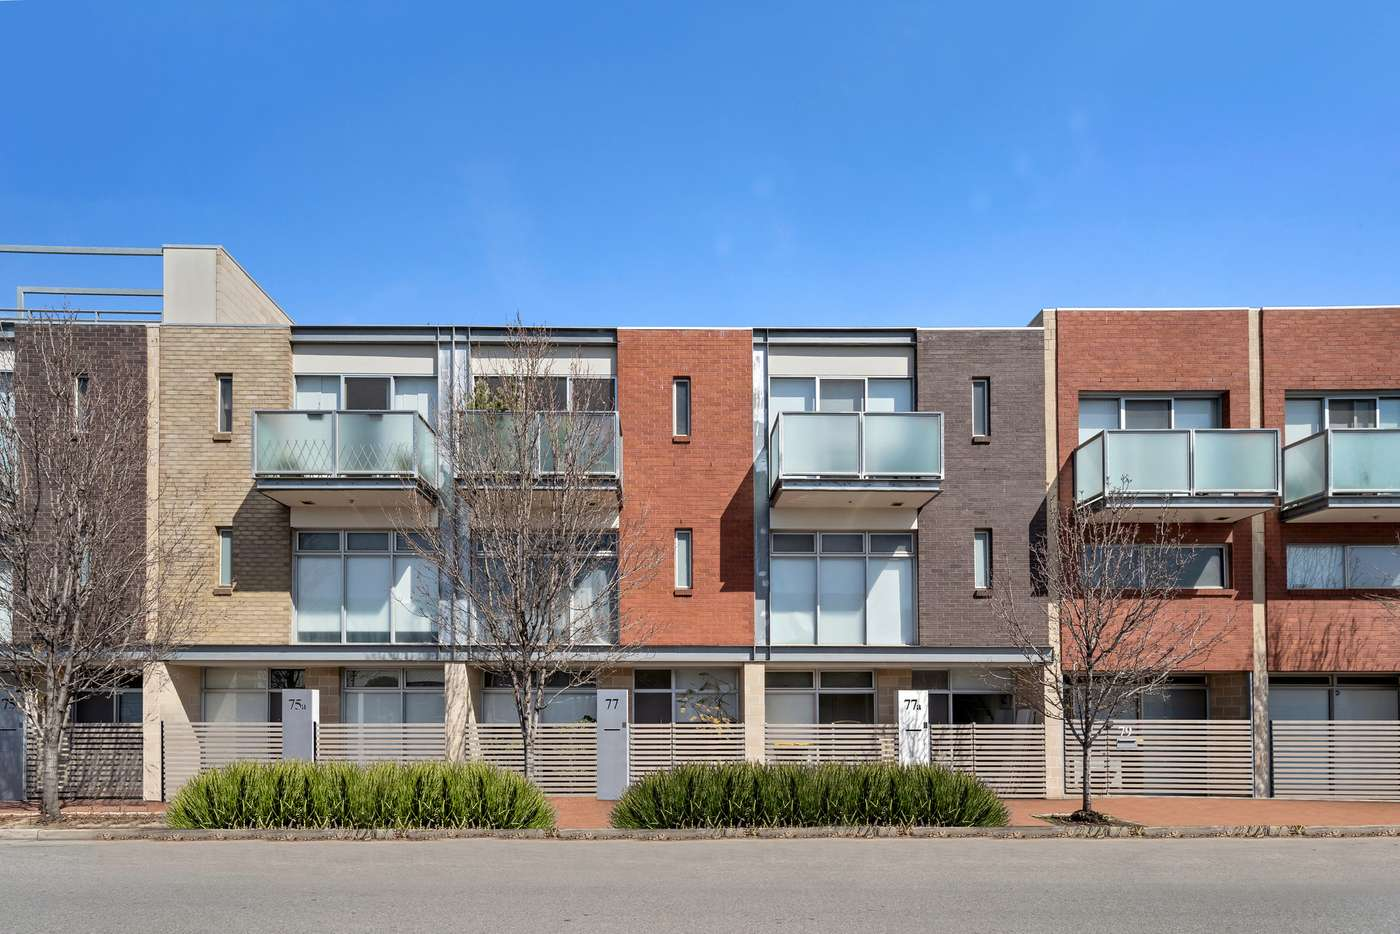 Main view of Homely townhouse listing, 77 Lipson Street, Port Adelaide, SA 5015